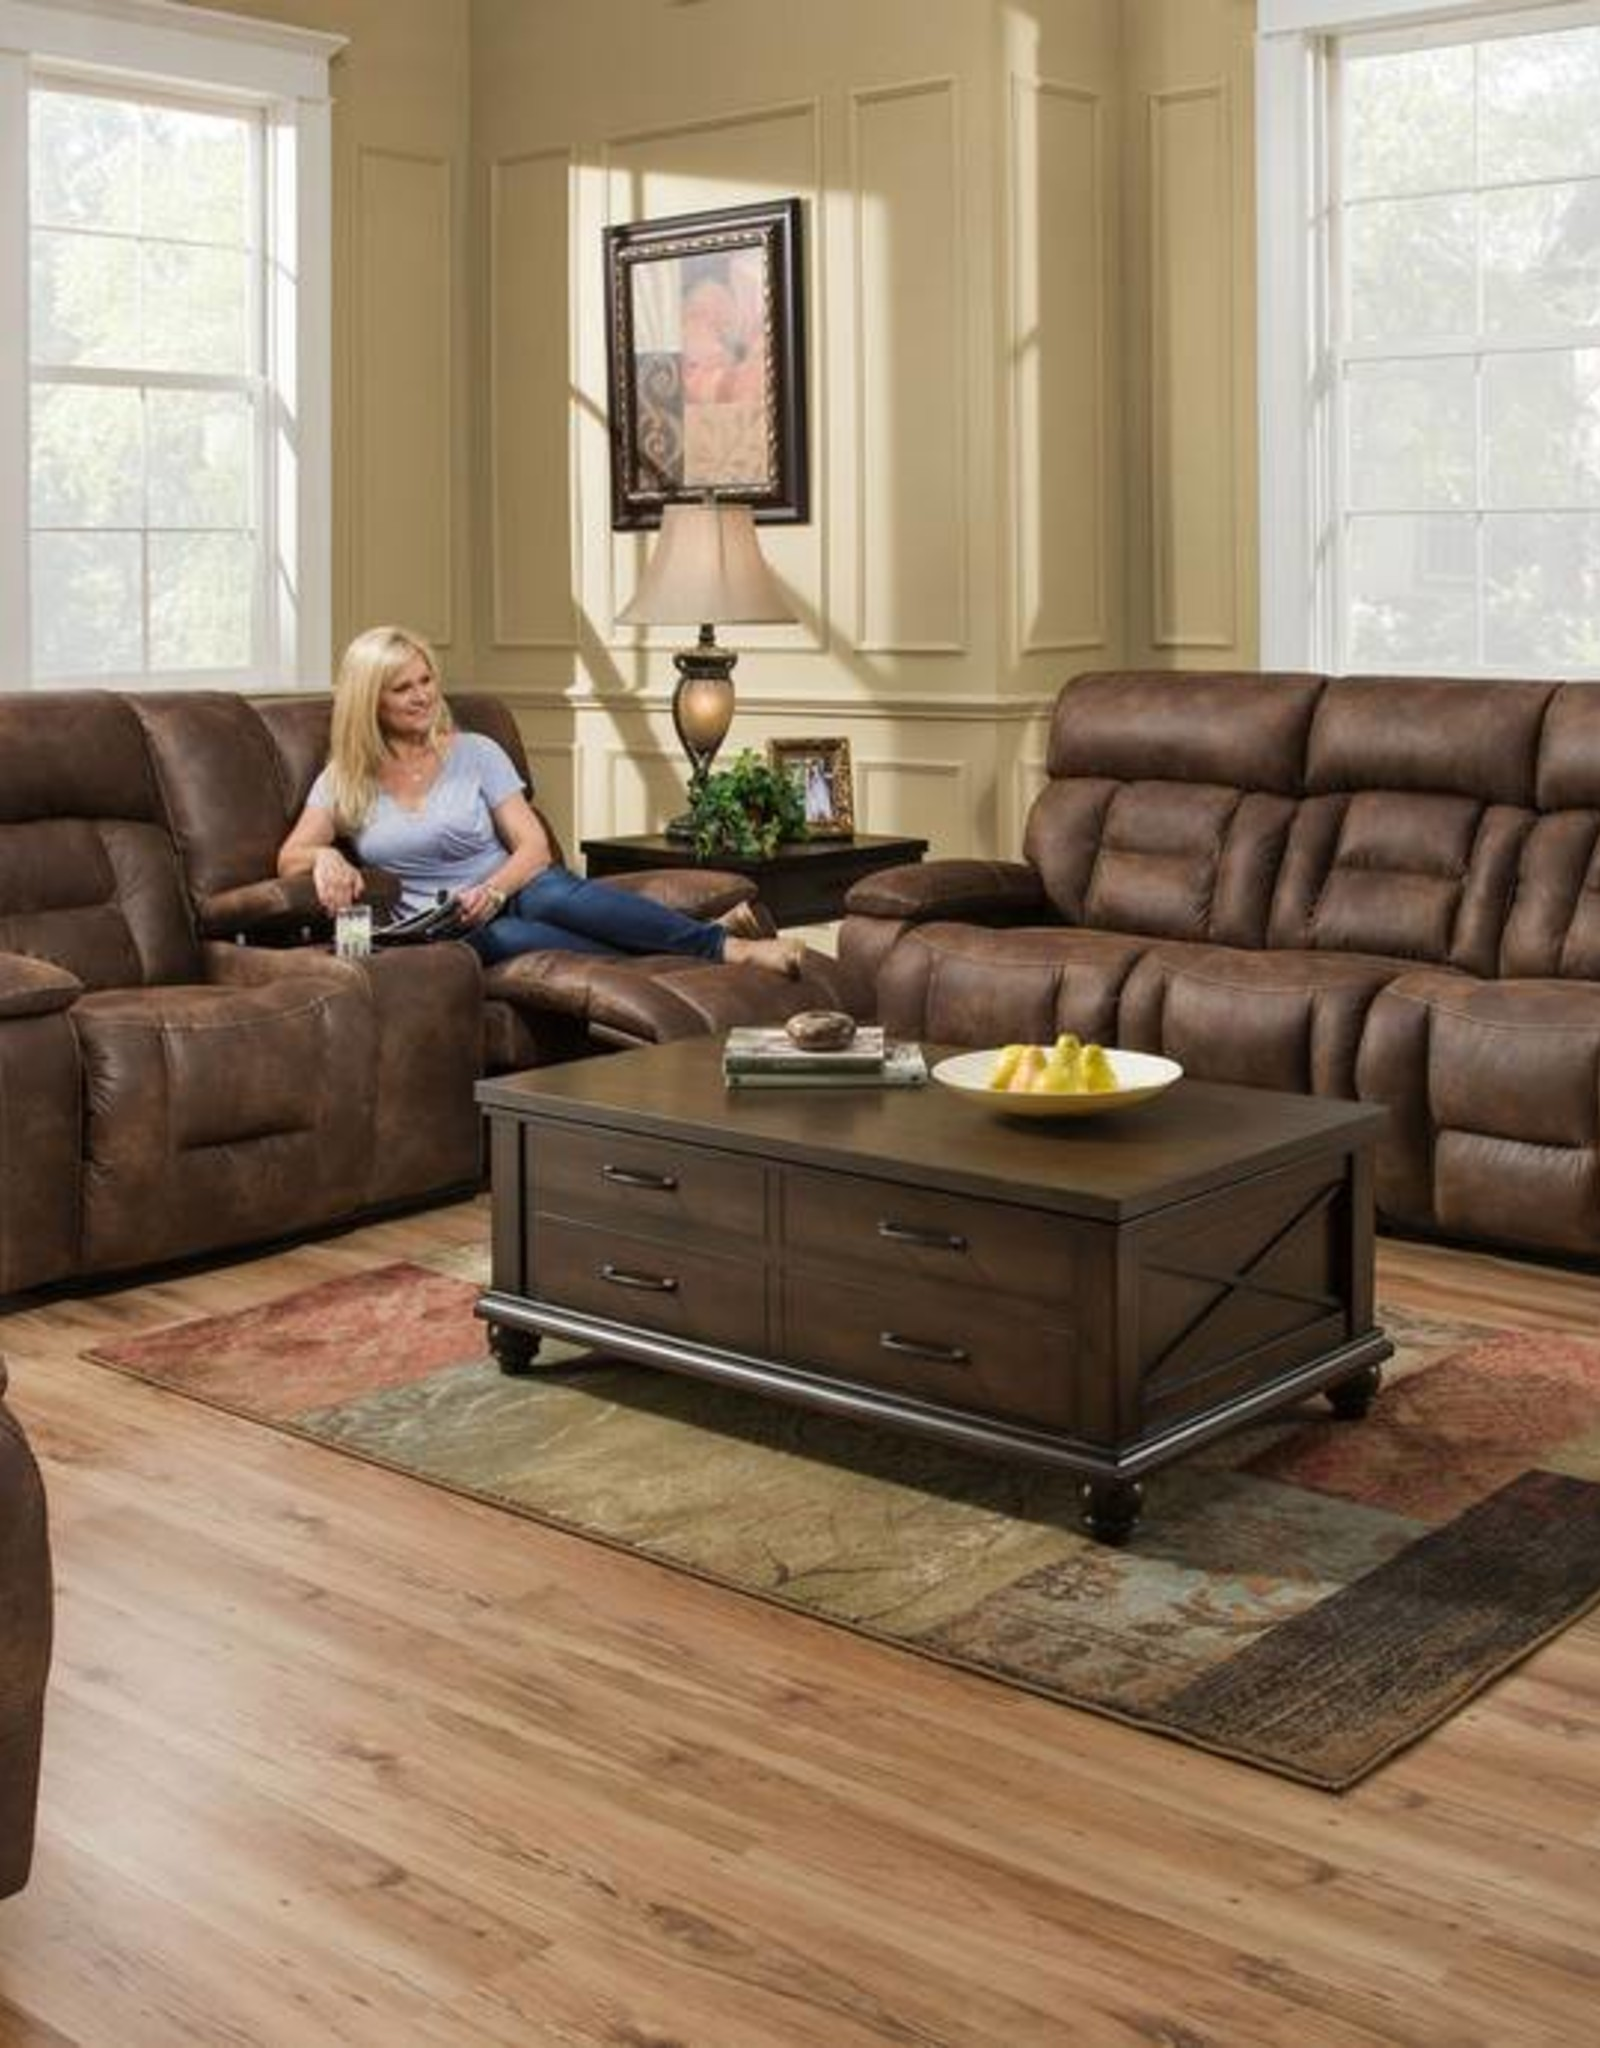 Picture of: Dorado Walnut Dual Reclining Sofa And Love Seat Set No Power Bargain Box And Bunks